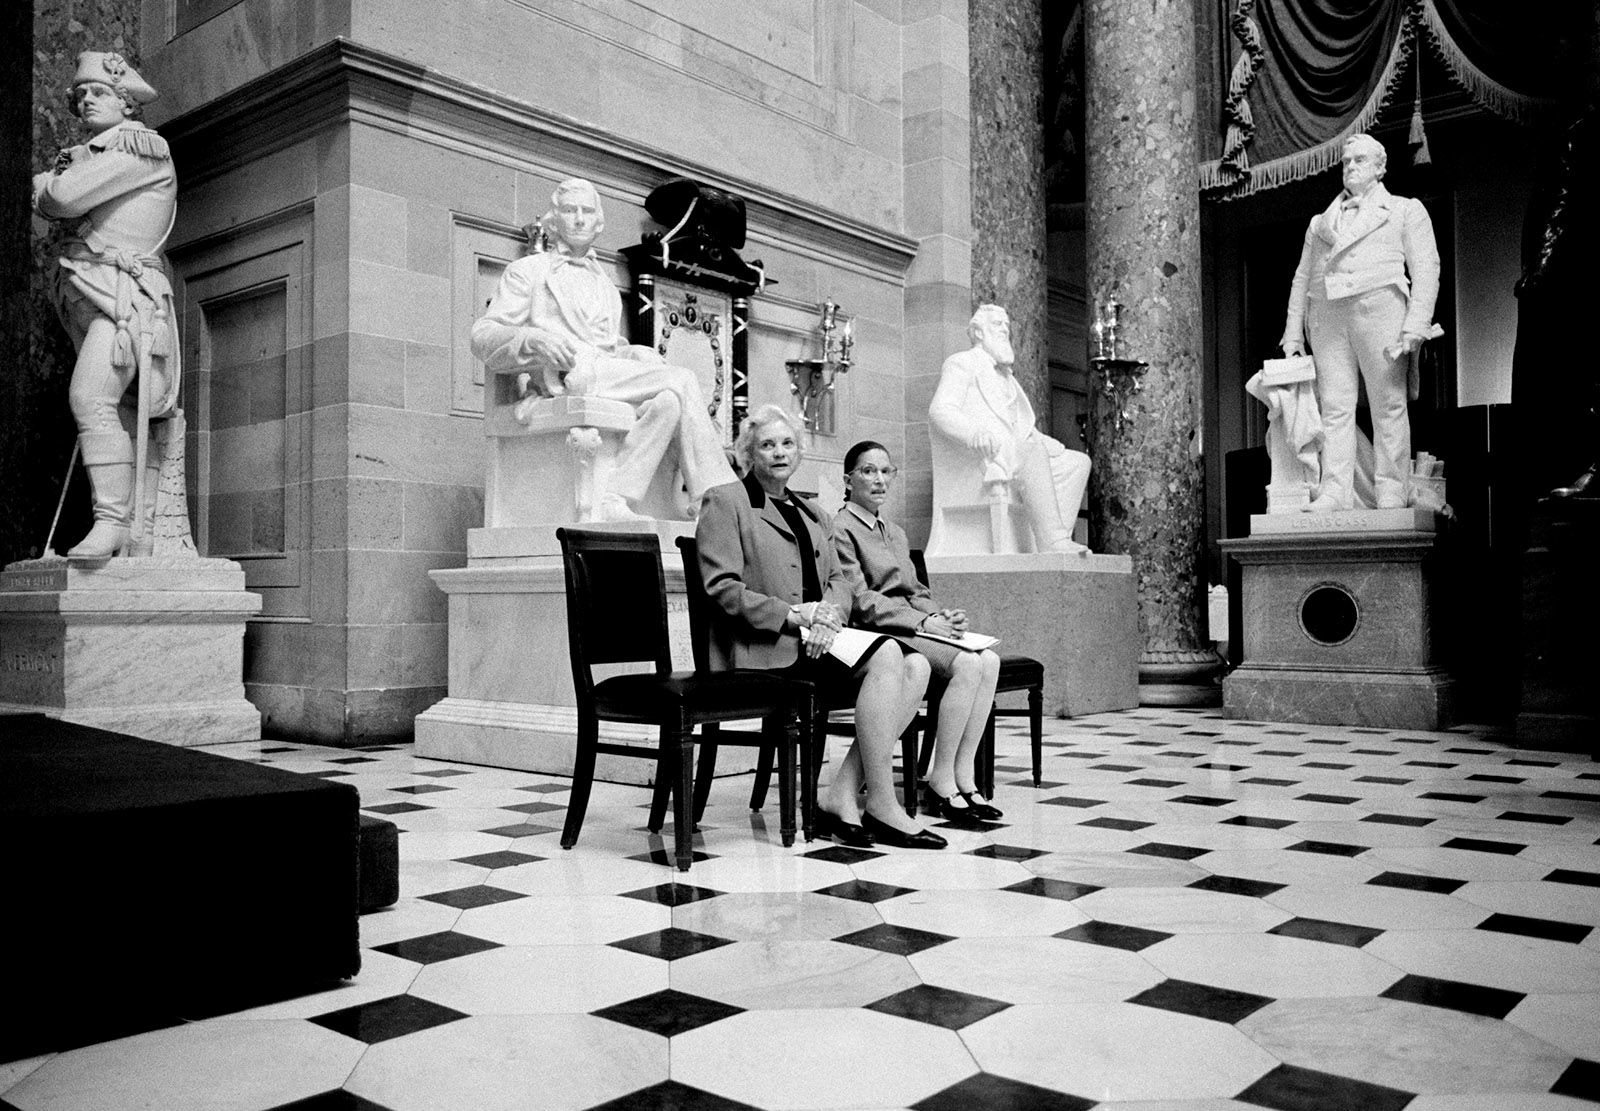 Sandra Day O'Connor and Ruth Bader Ginsburg preparing to address a meeting of the Congressional Women's Caucus, Washington, D.C., 2001